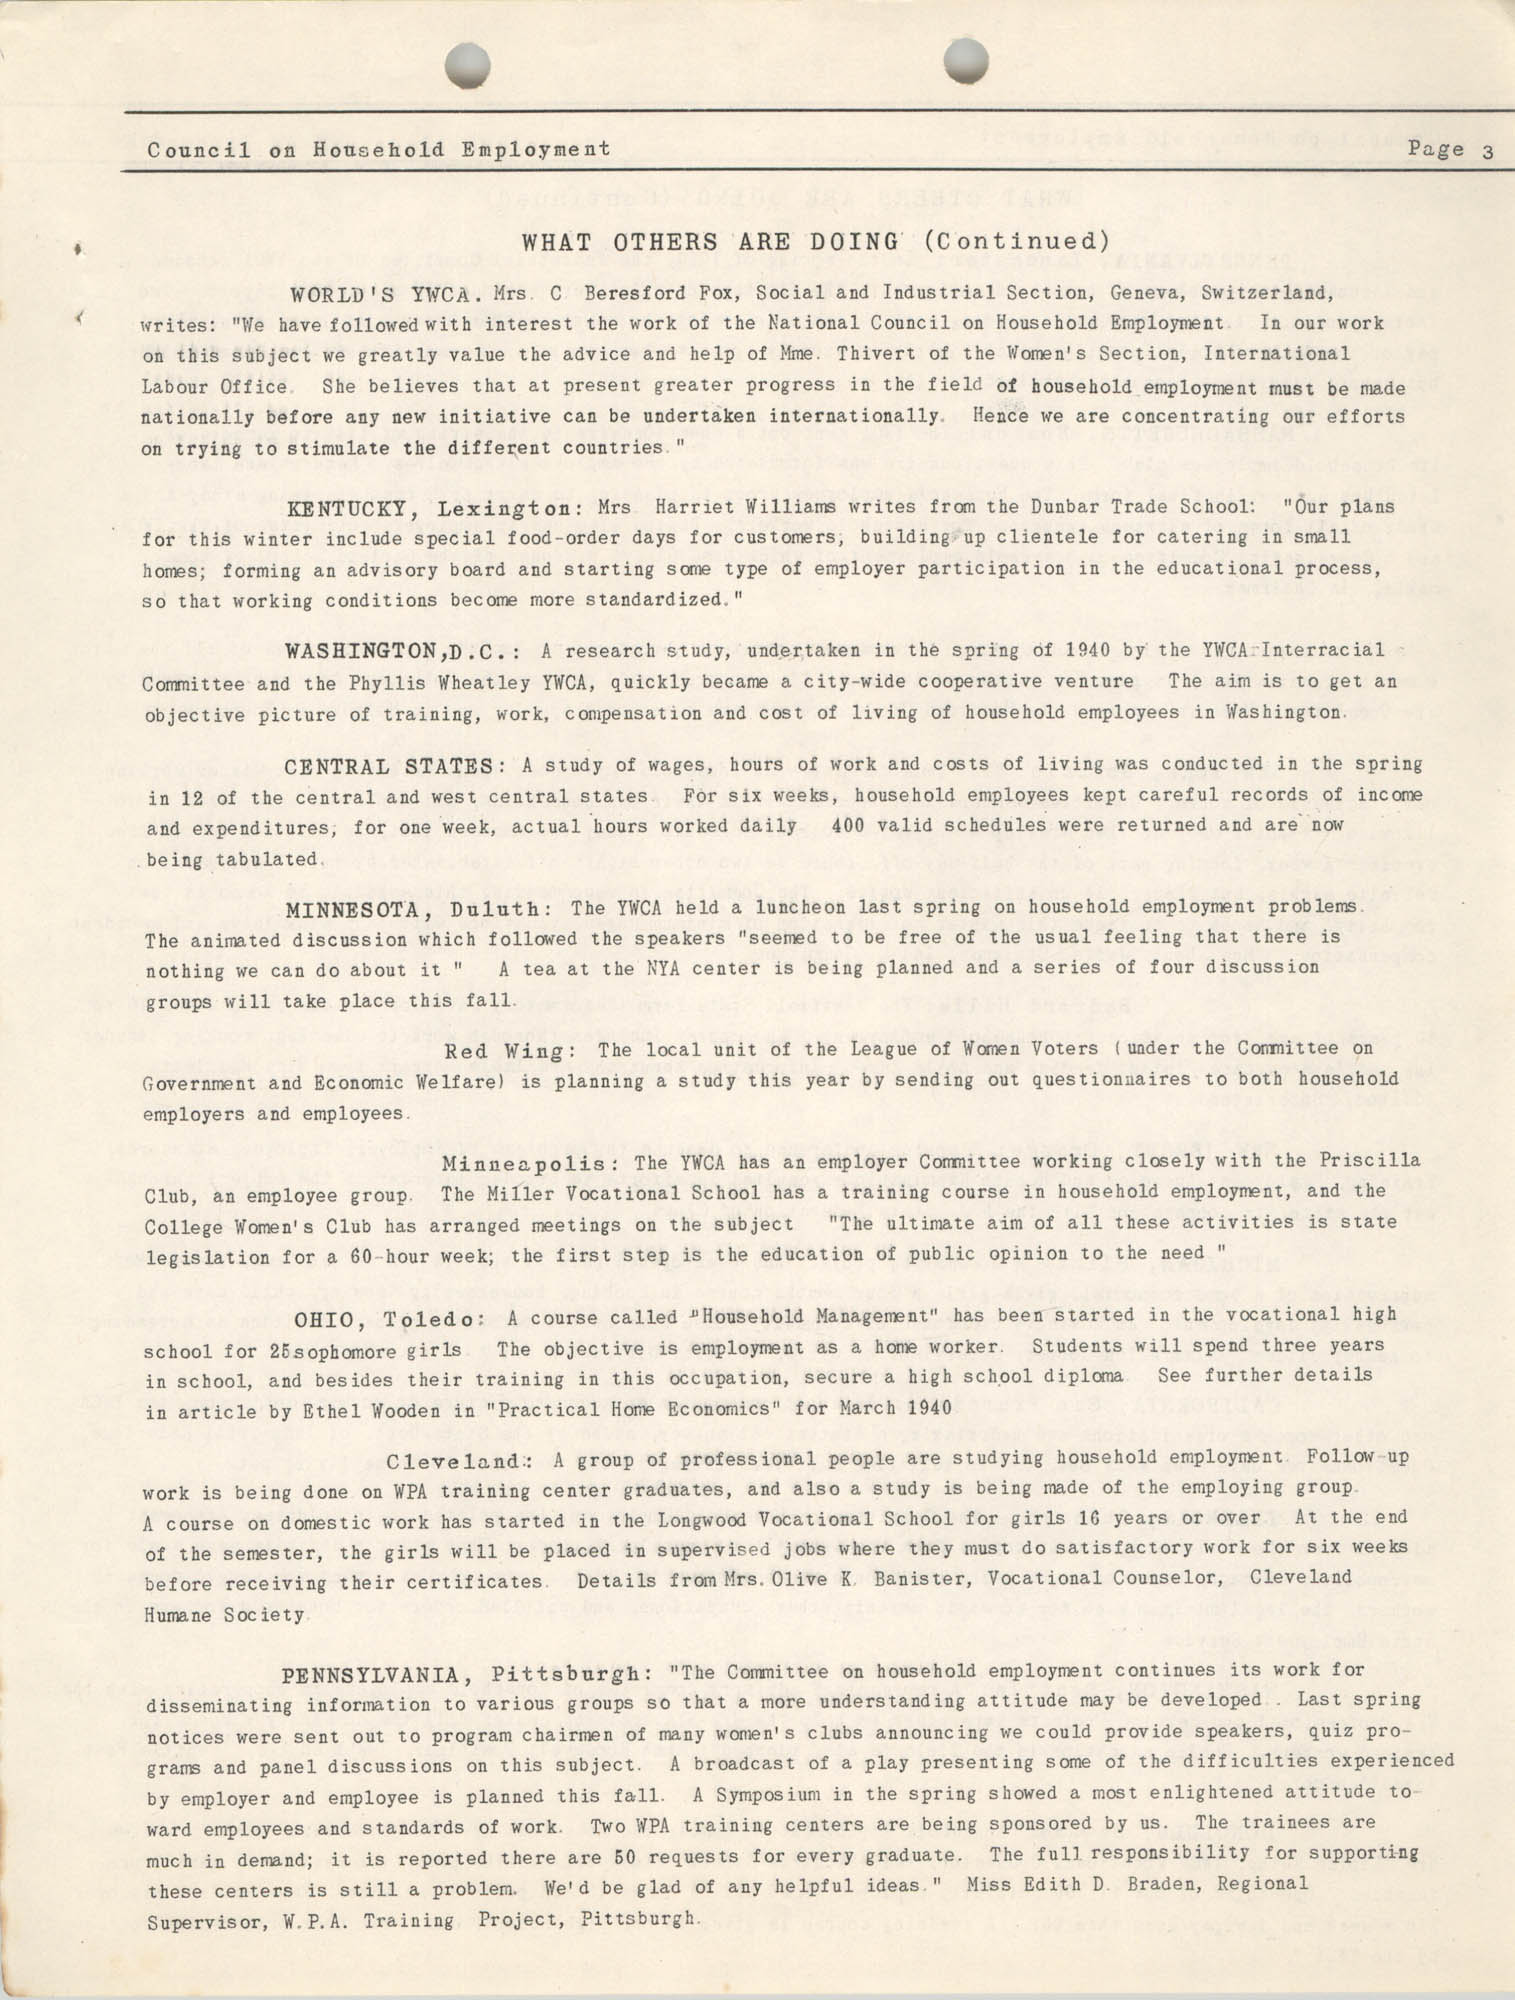 Bulletin of the National Council on Household Employment, Series II, No. 1, December 1940, Page 3